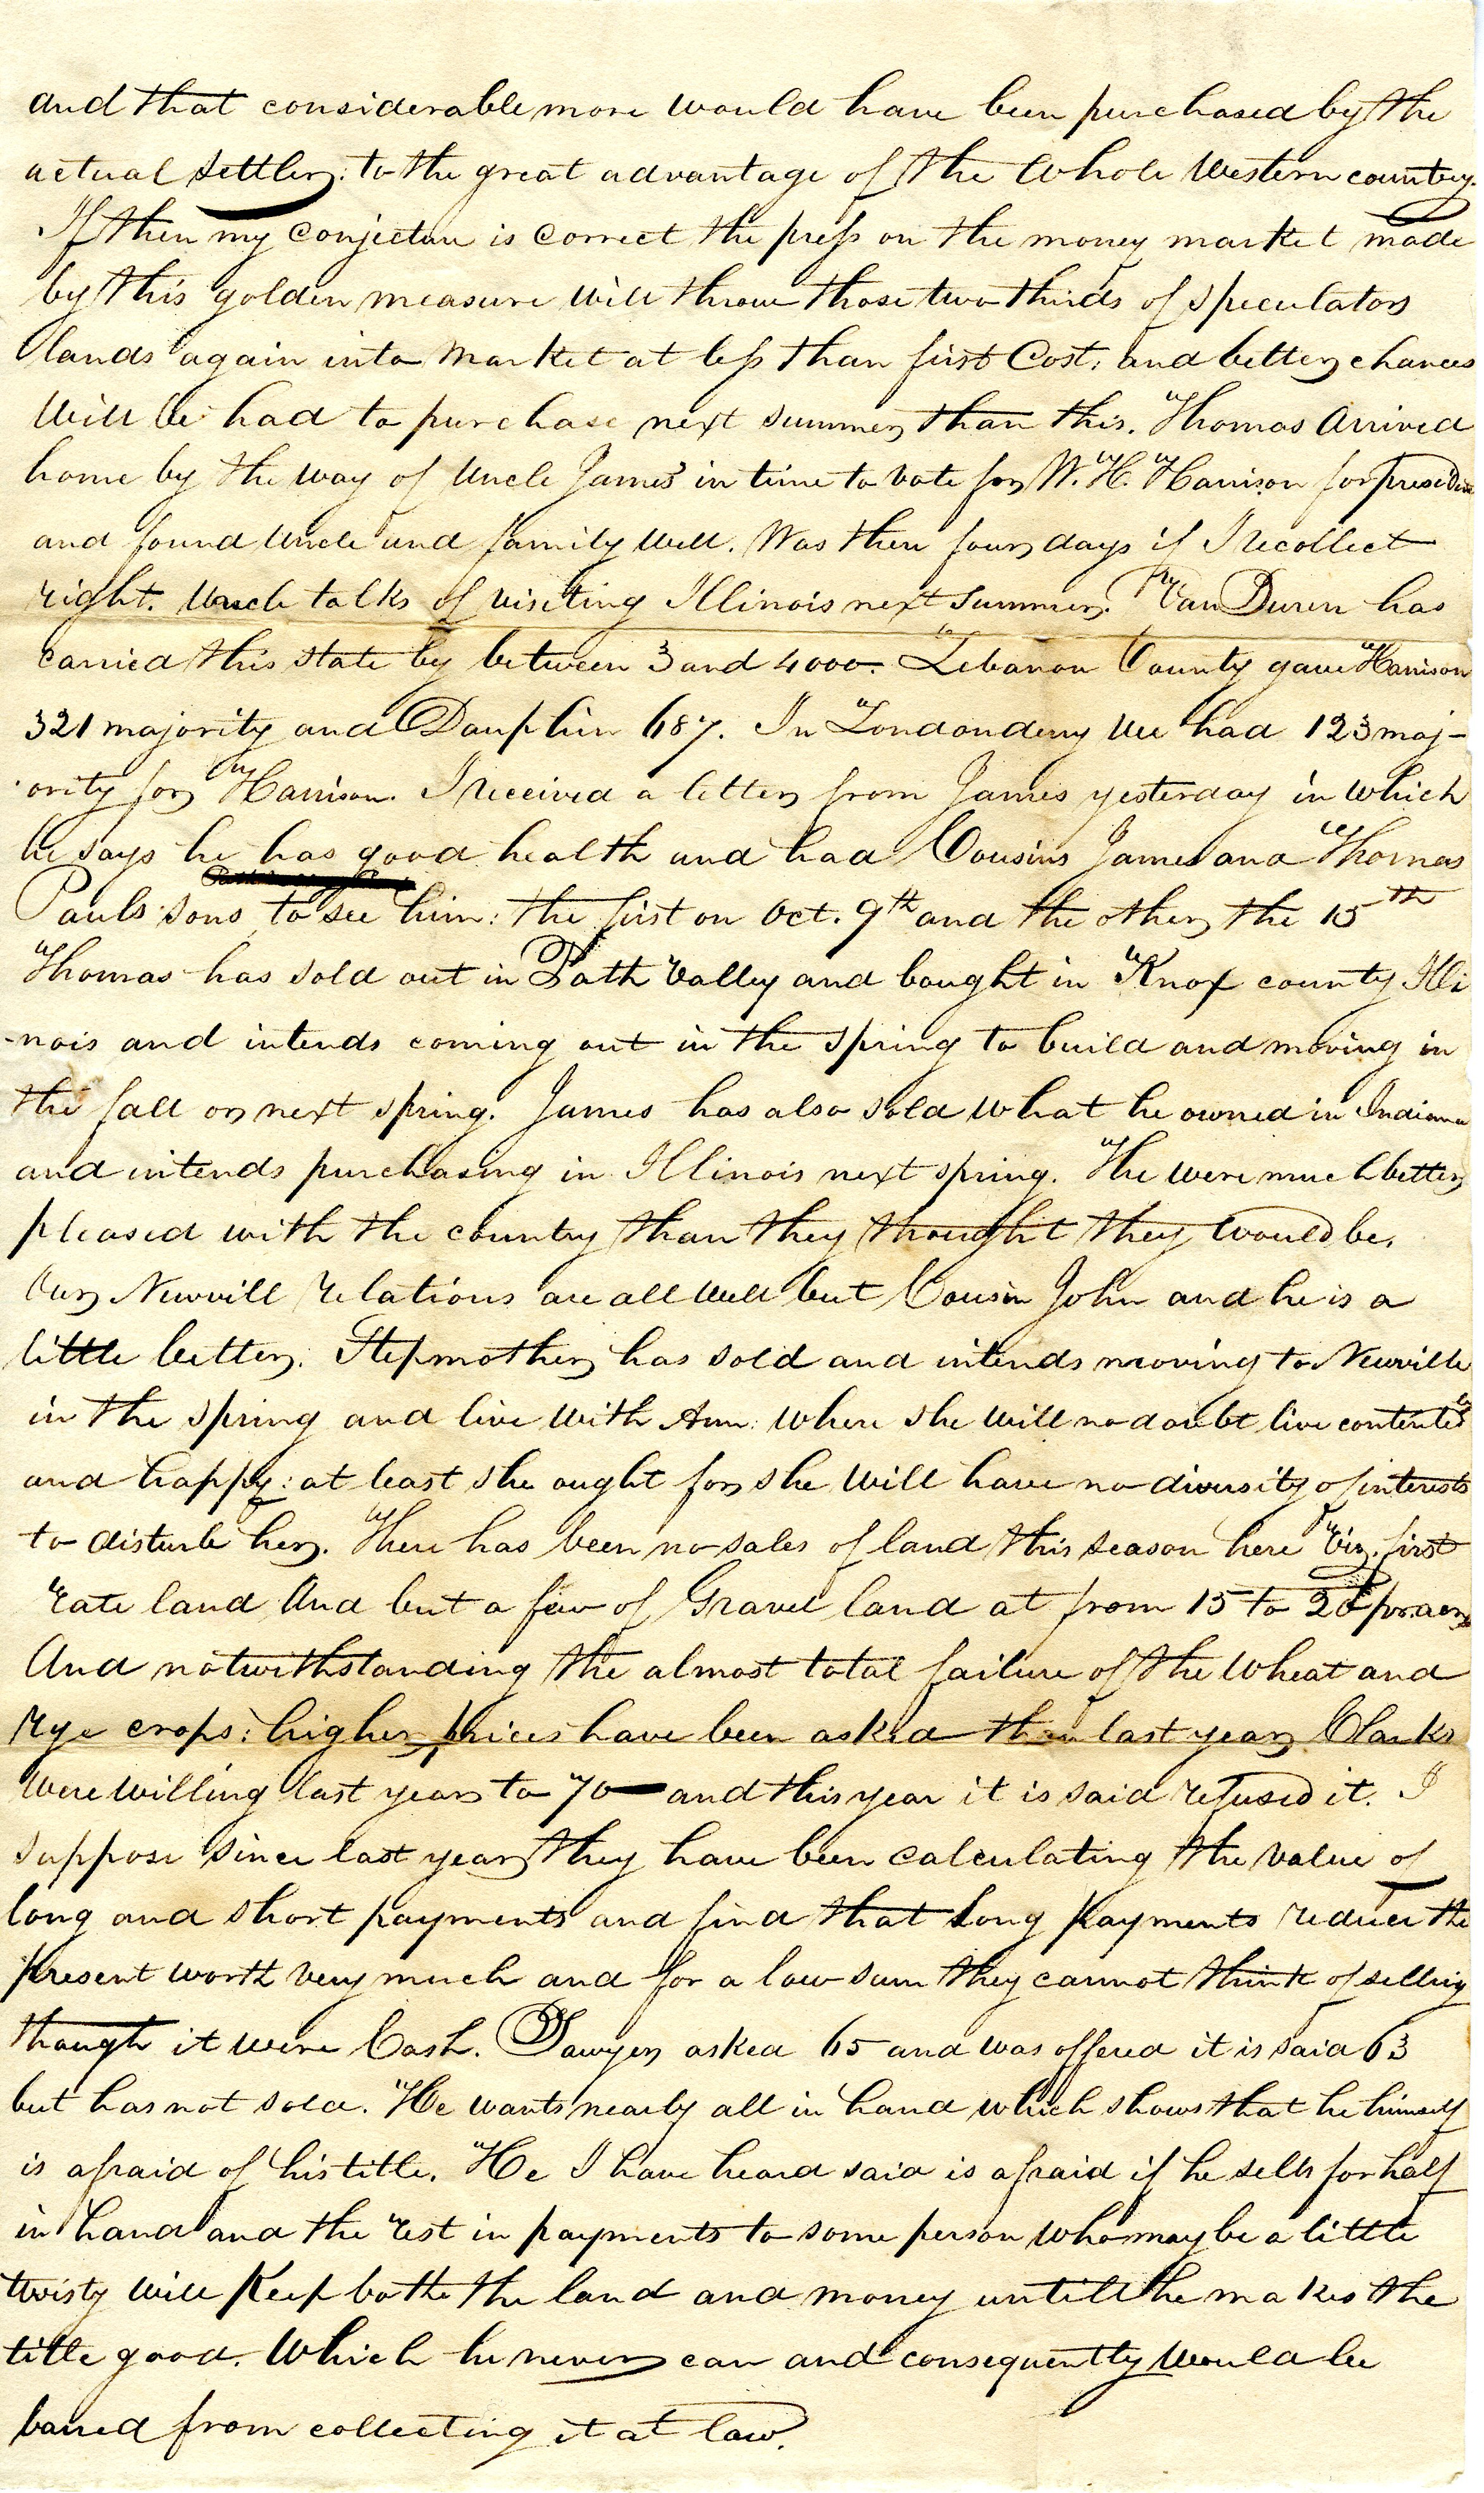 Letter From William Geddes to John Geddes, November 16, 1836 image